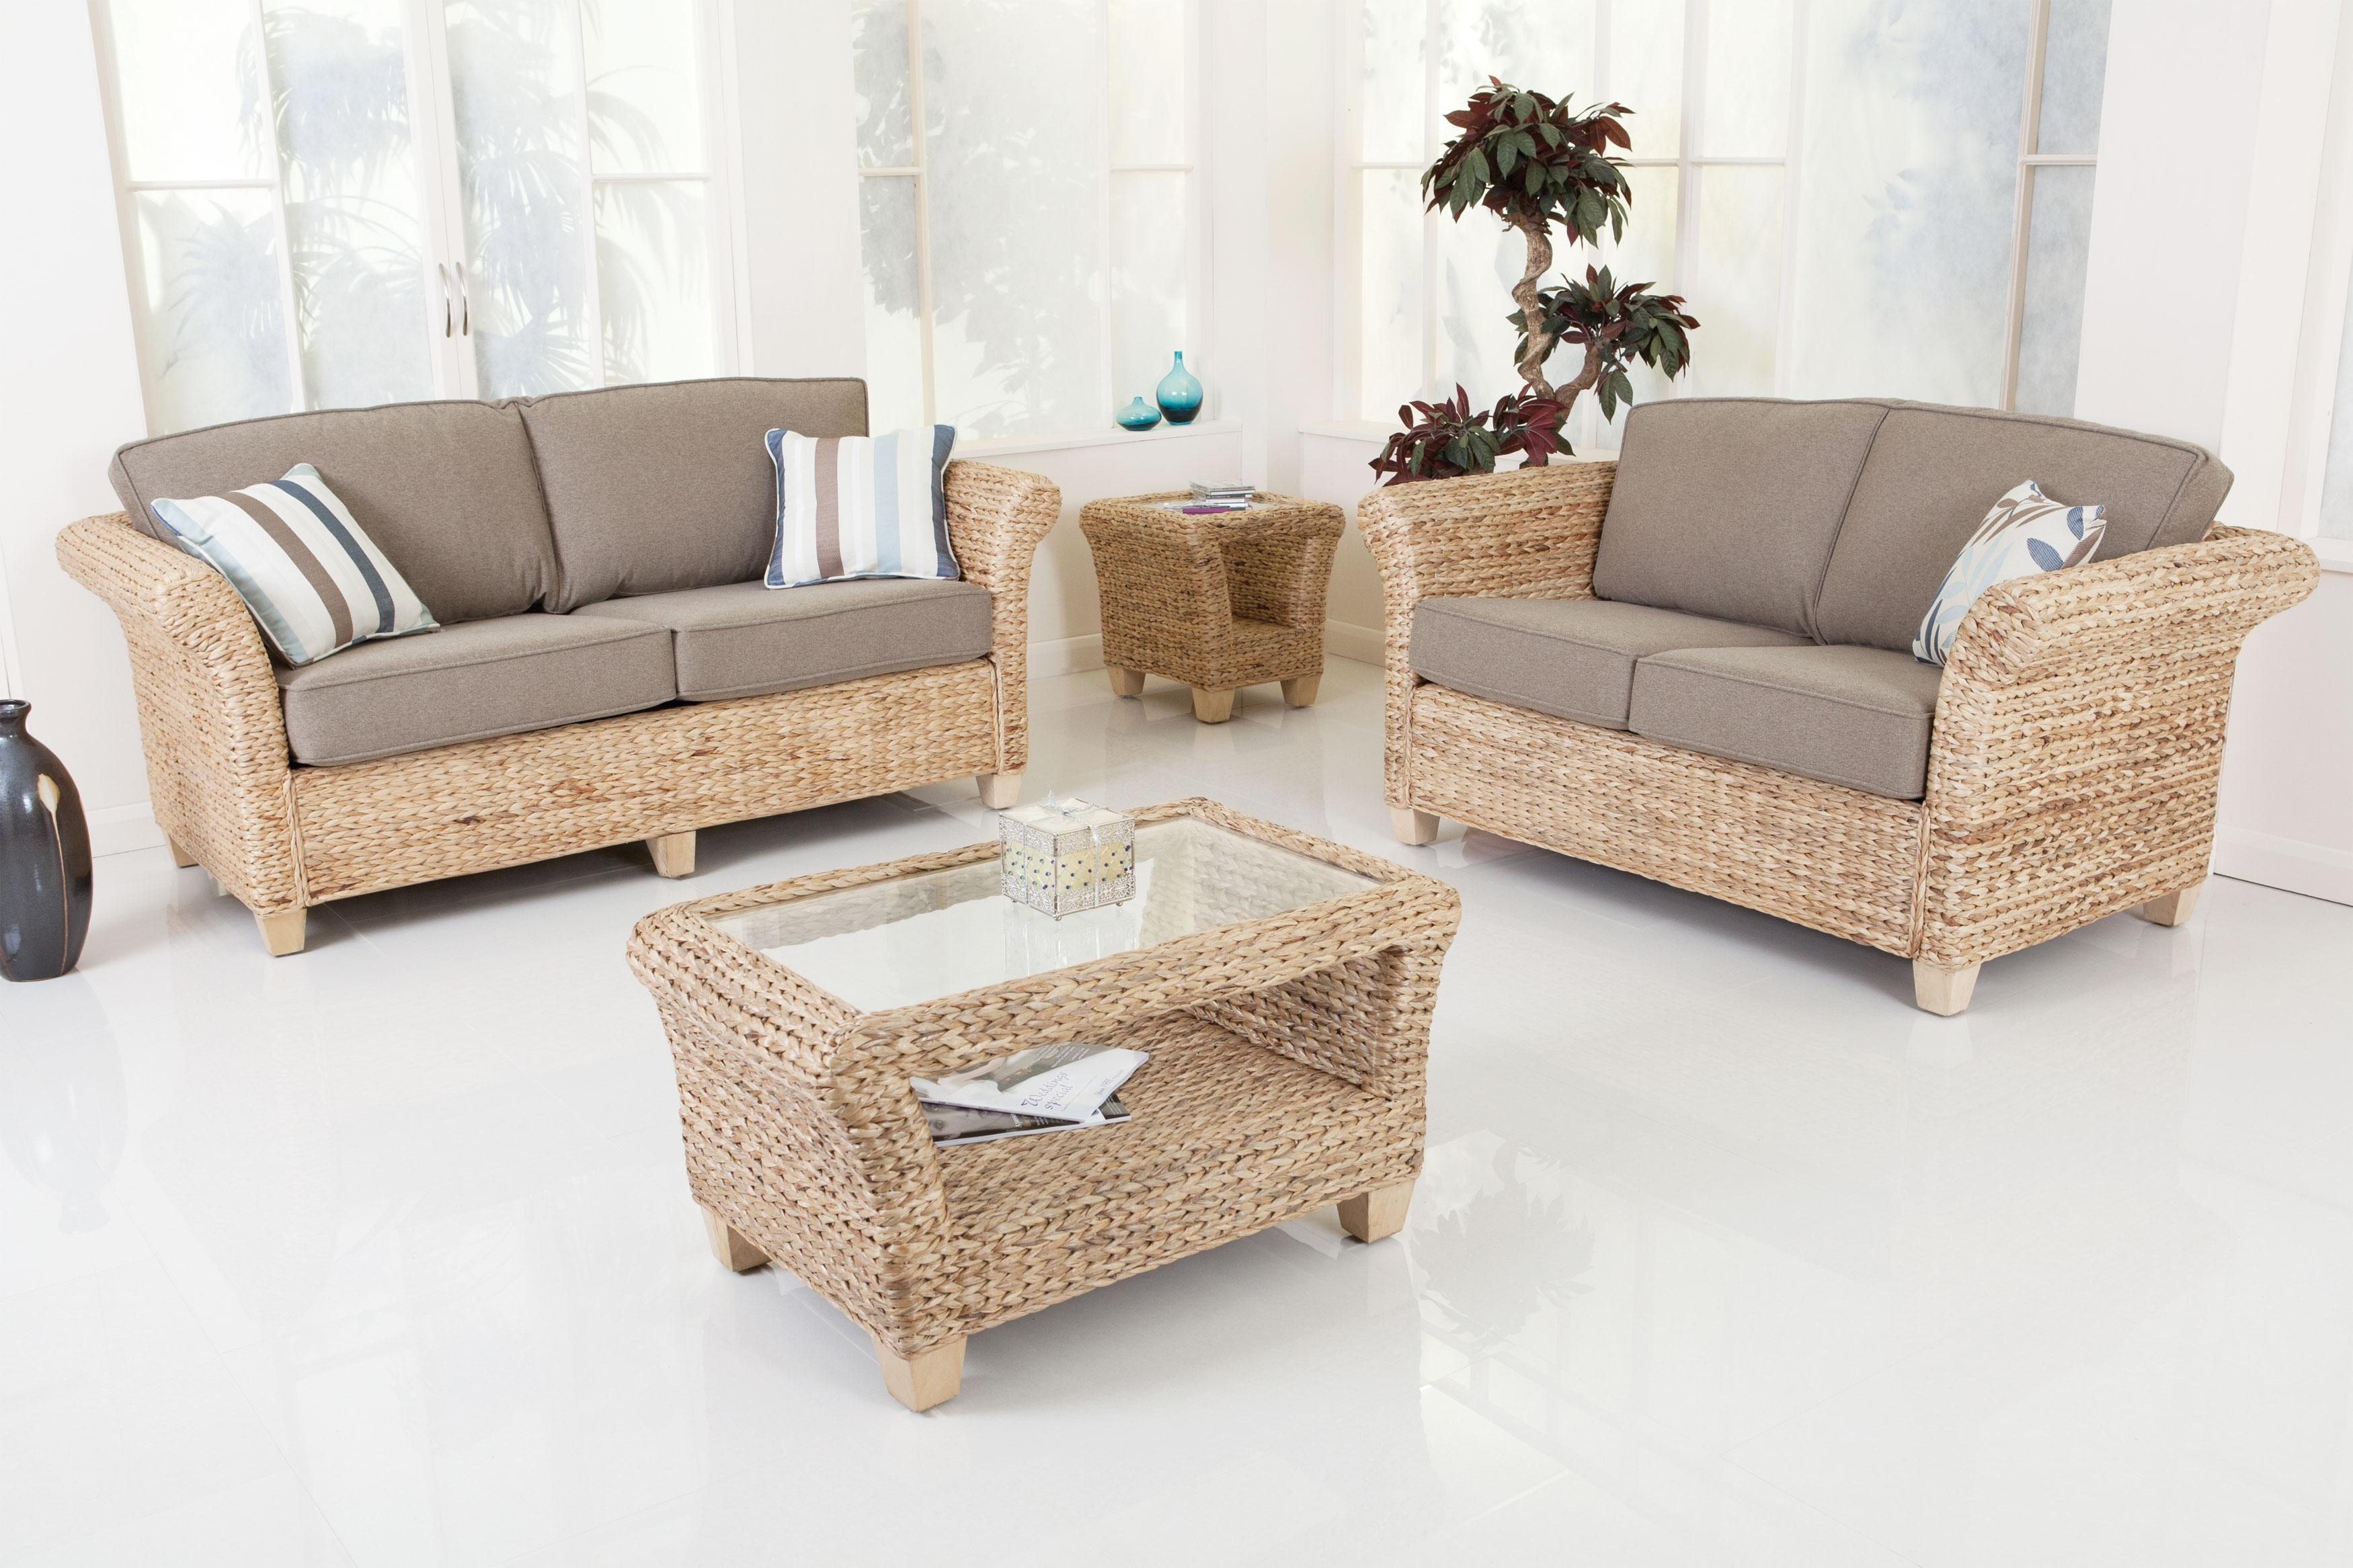 Bamboo Sofa With Design Gallery 6350 | Kengire Intended For Ken Sofa Sets (Image 5 of 20)